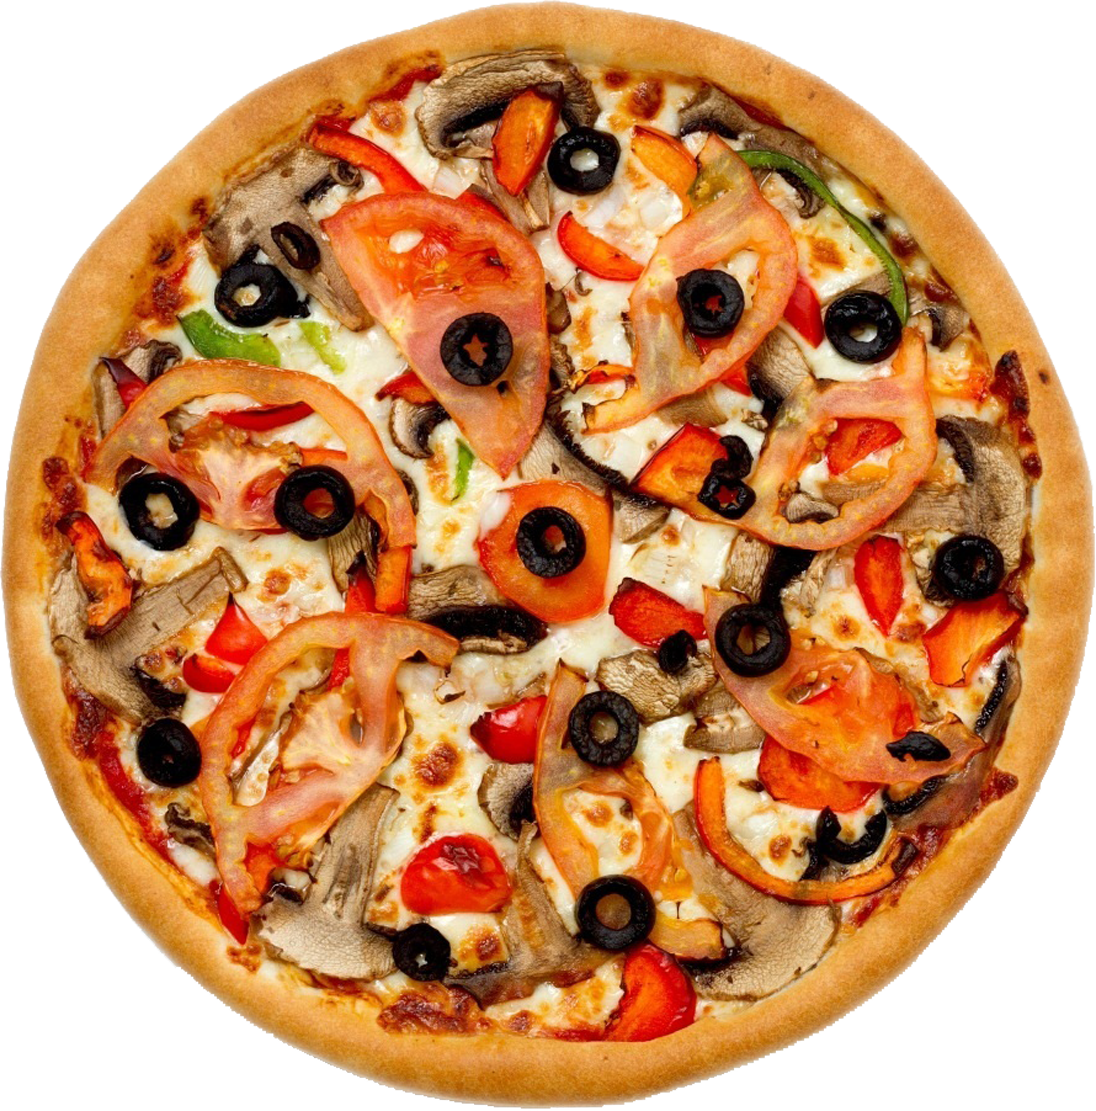 pizza images download pizza #7973